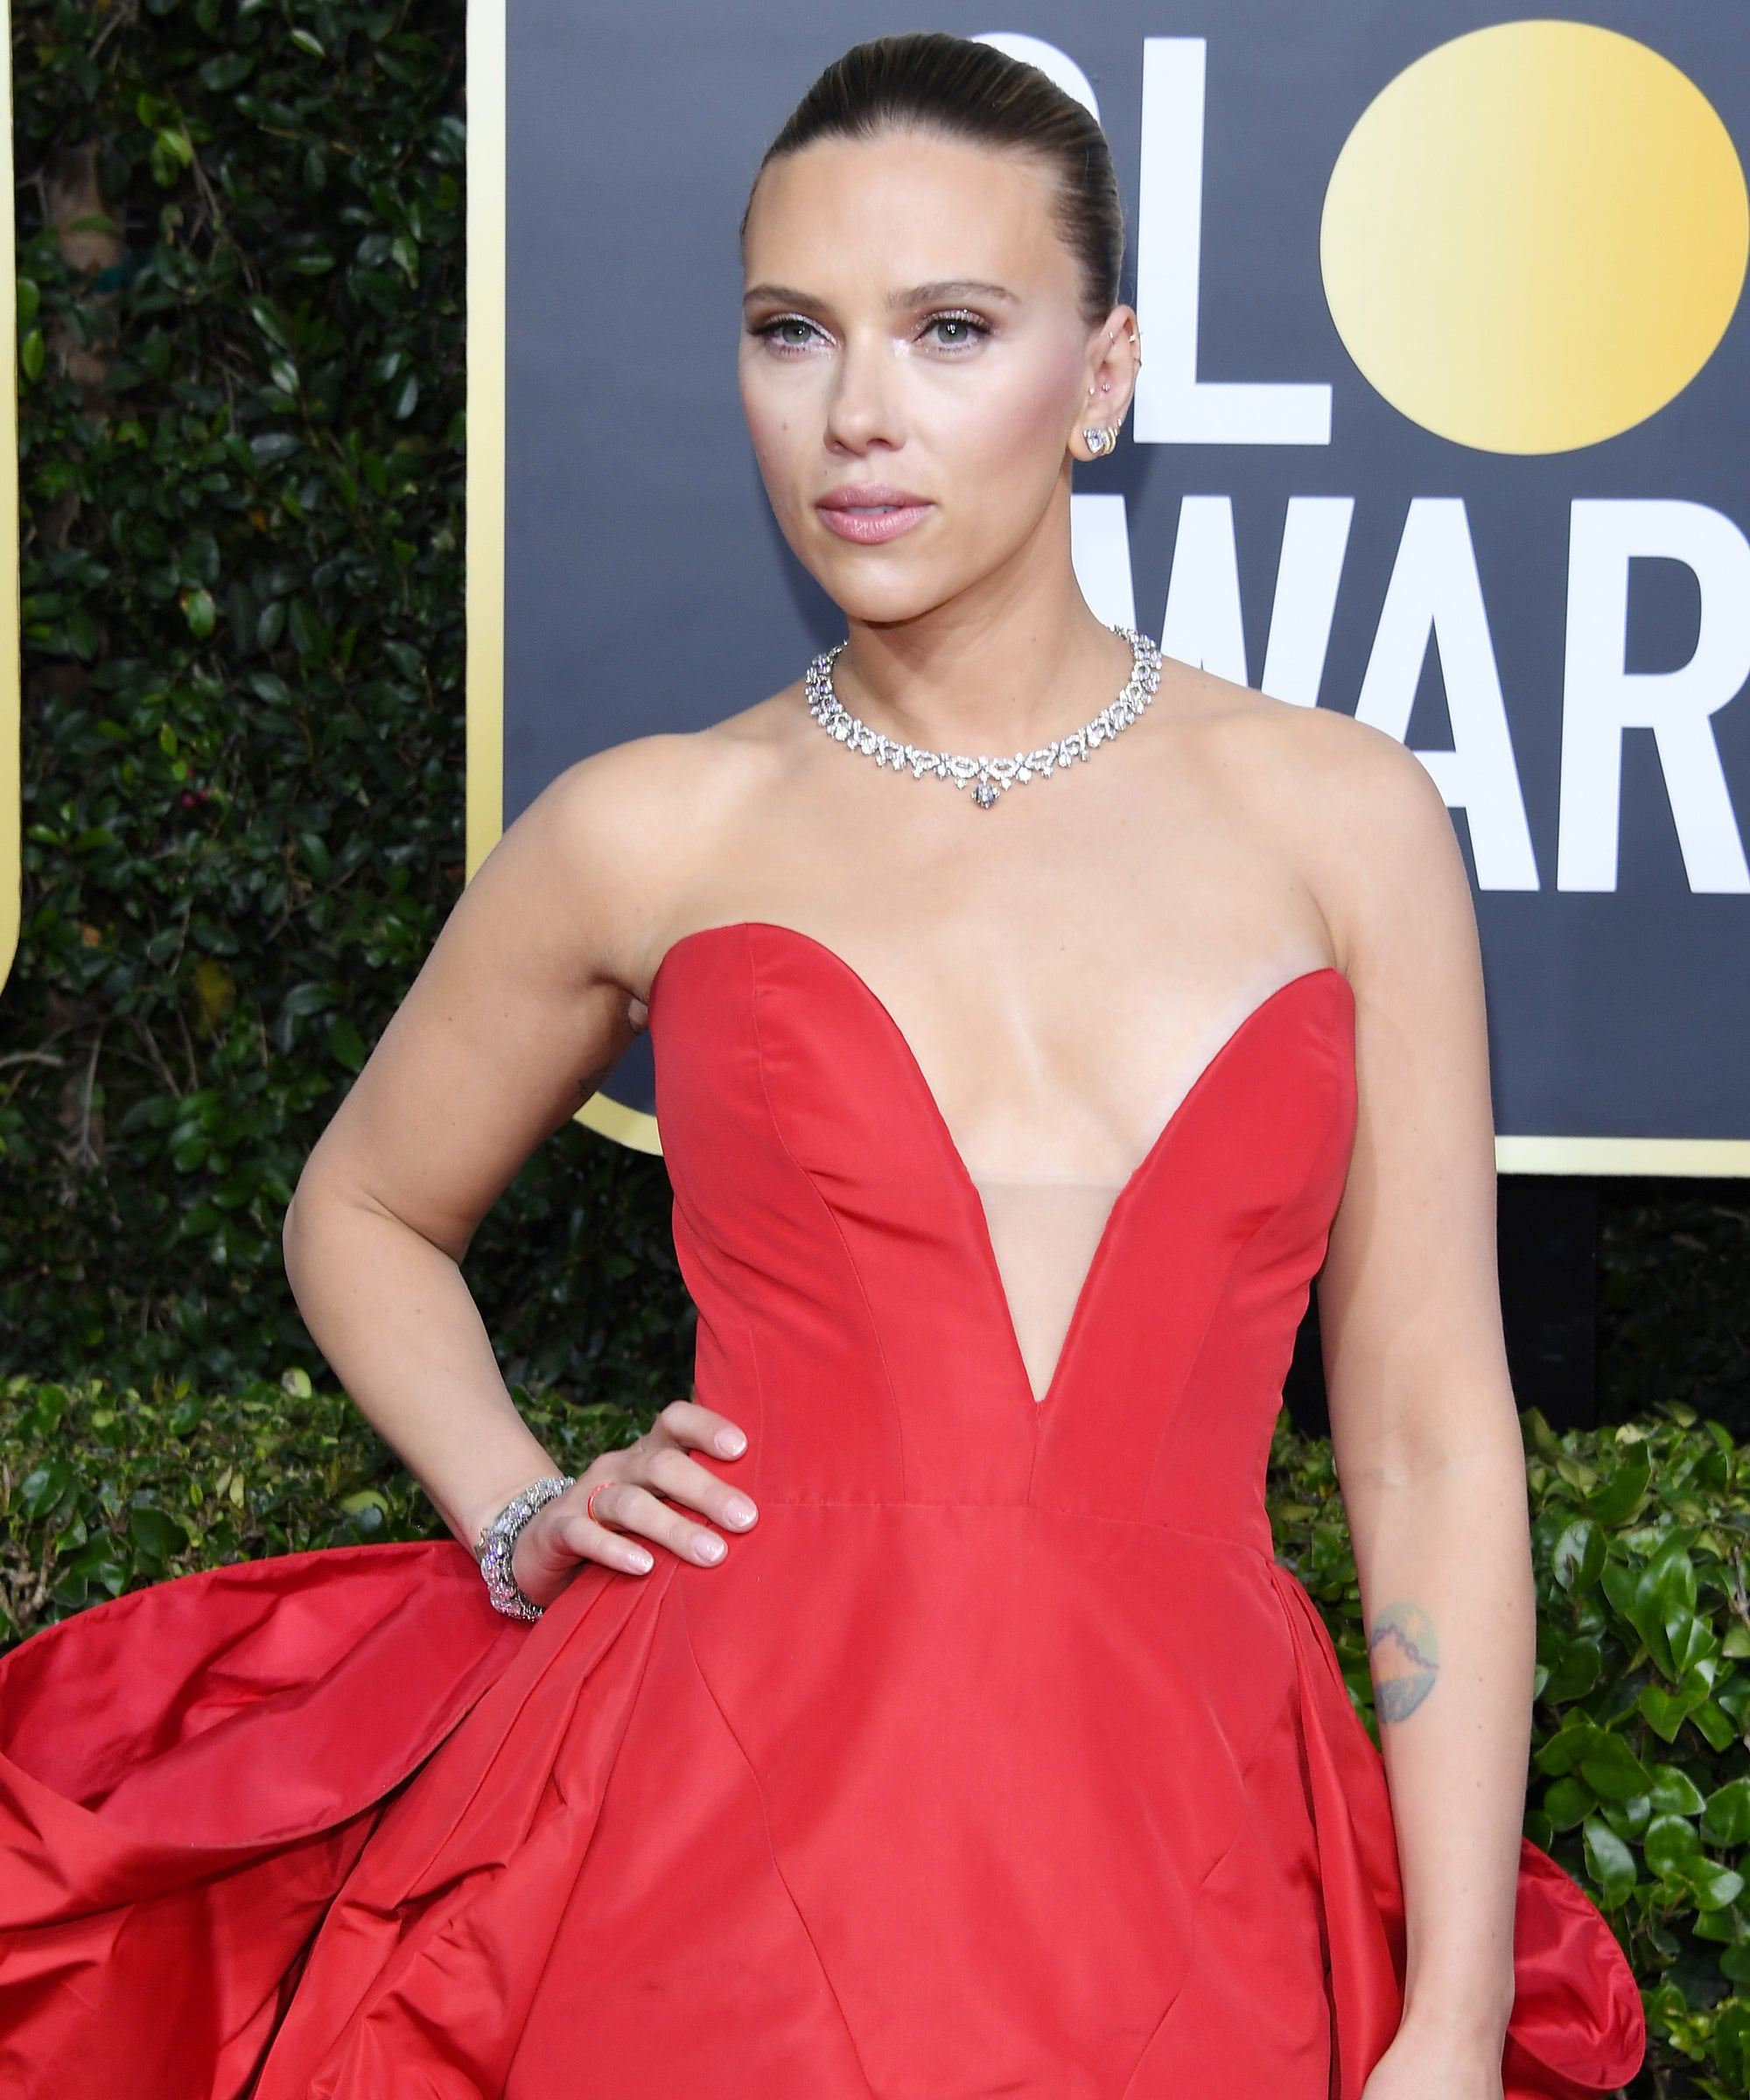 Scarlett Johansson's Golden Globes Look Puts Her Back Tattoo On Full Display